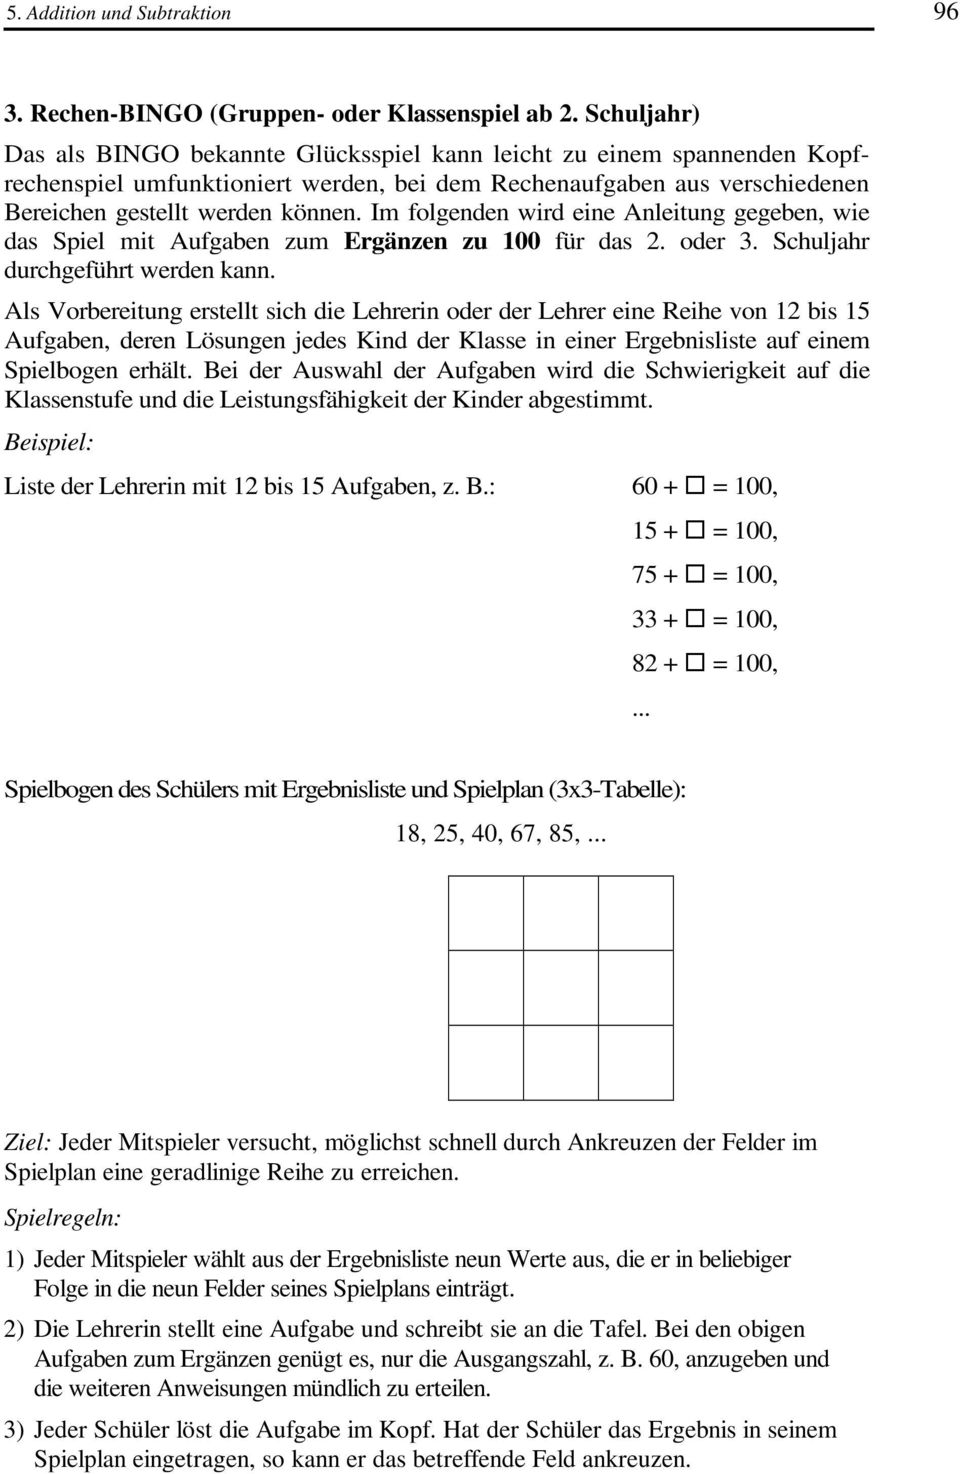 5. Addition und Subtraktion - PDF